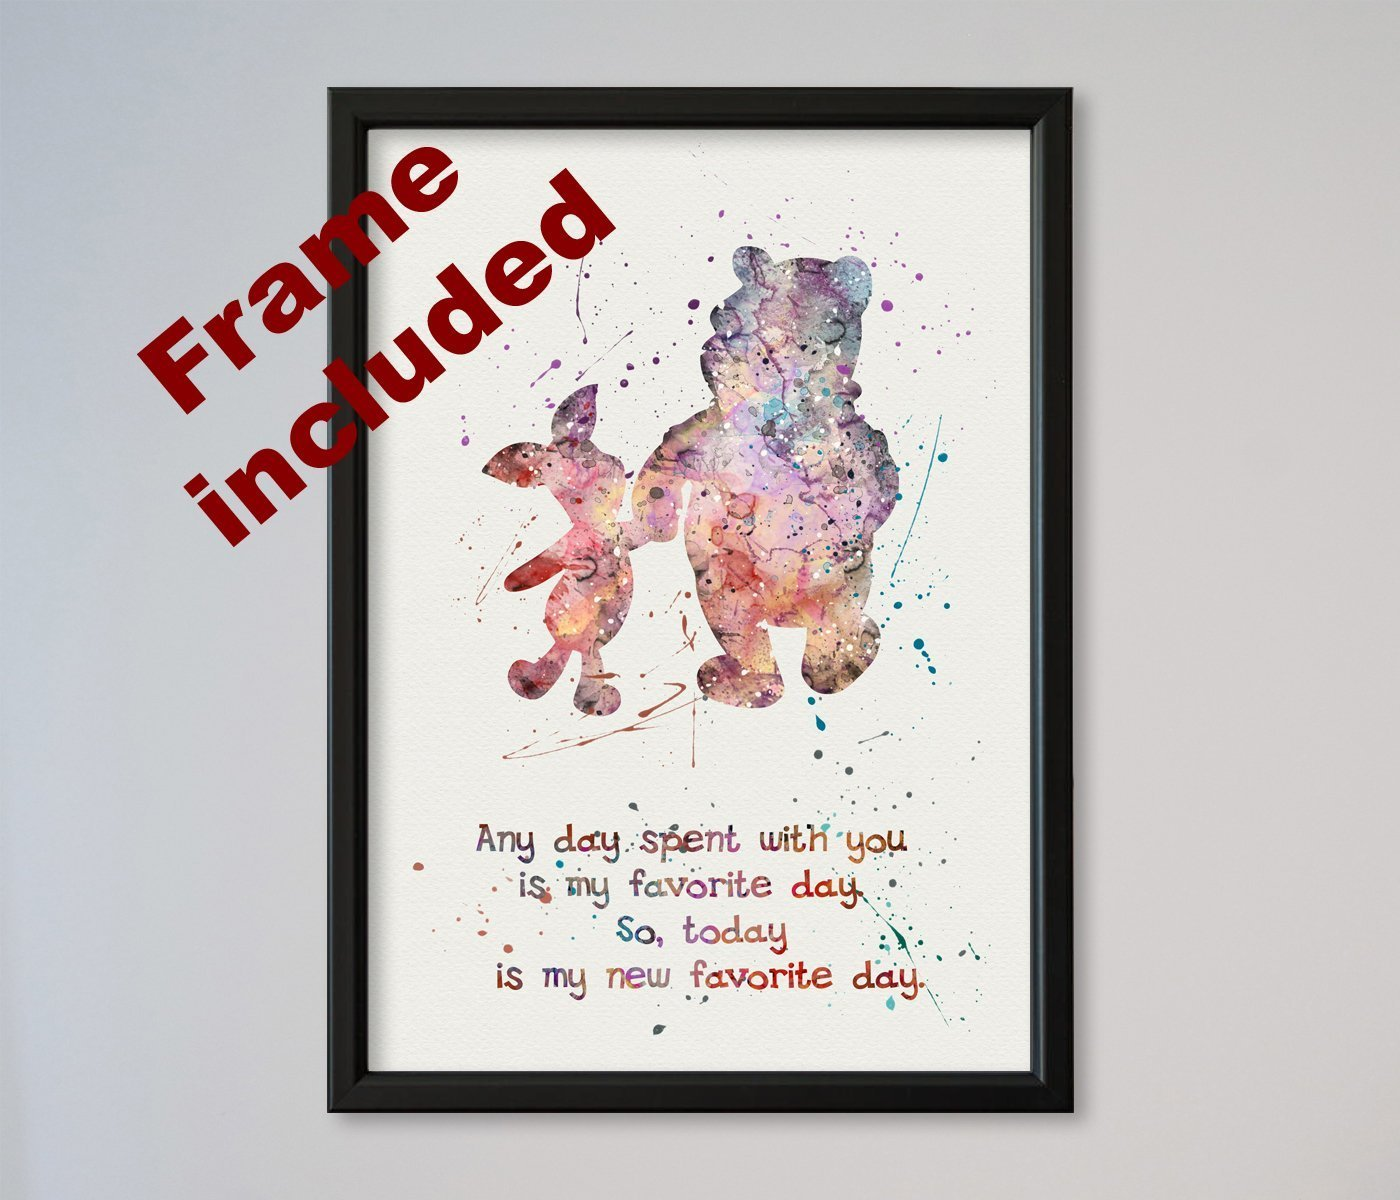 Amazon.com: Winnie-the-Pooh and Piglet Quote FRAMED Poster ...